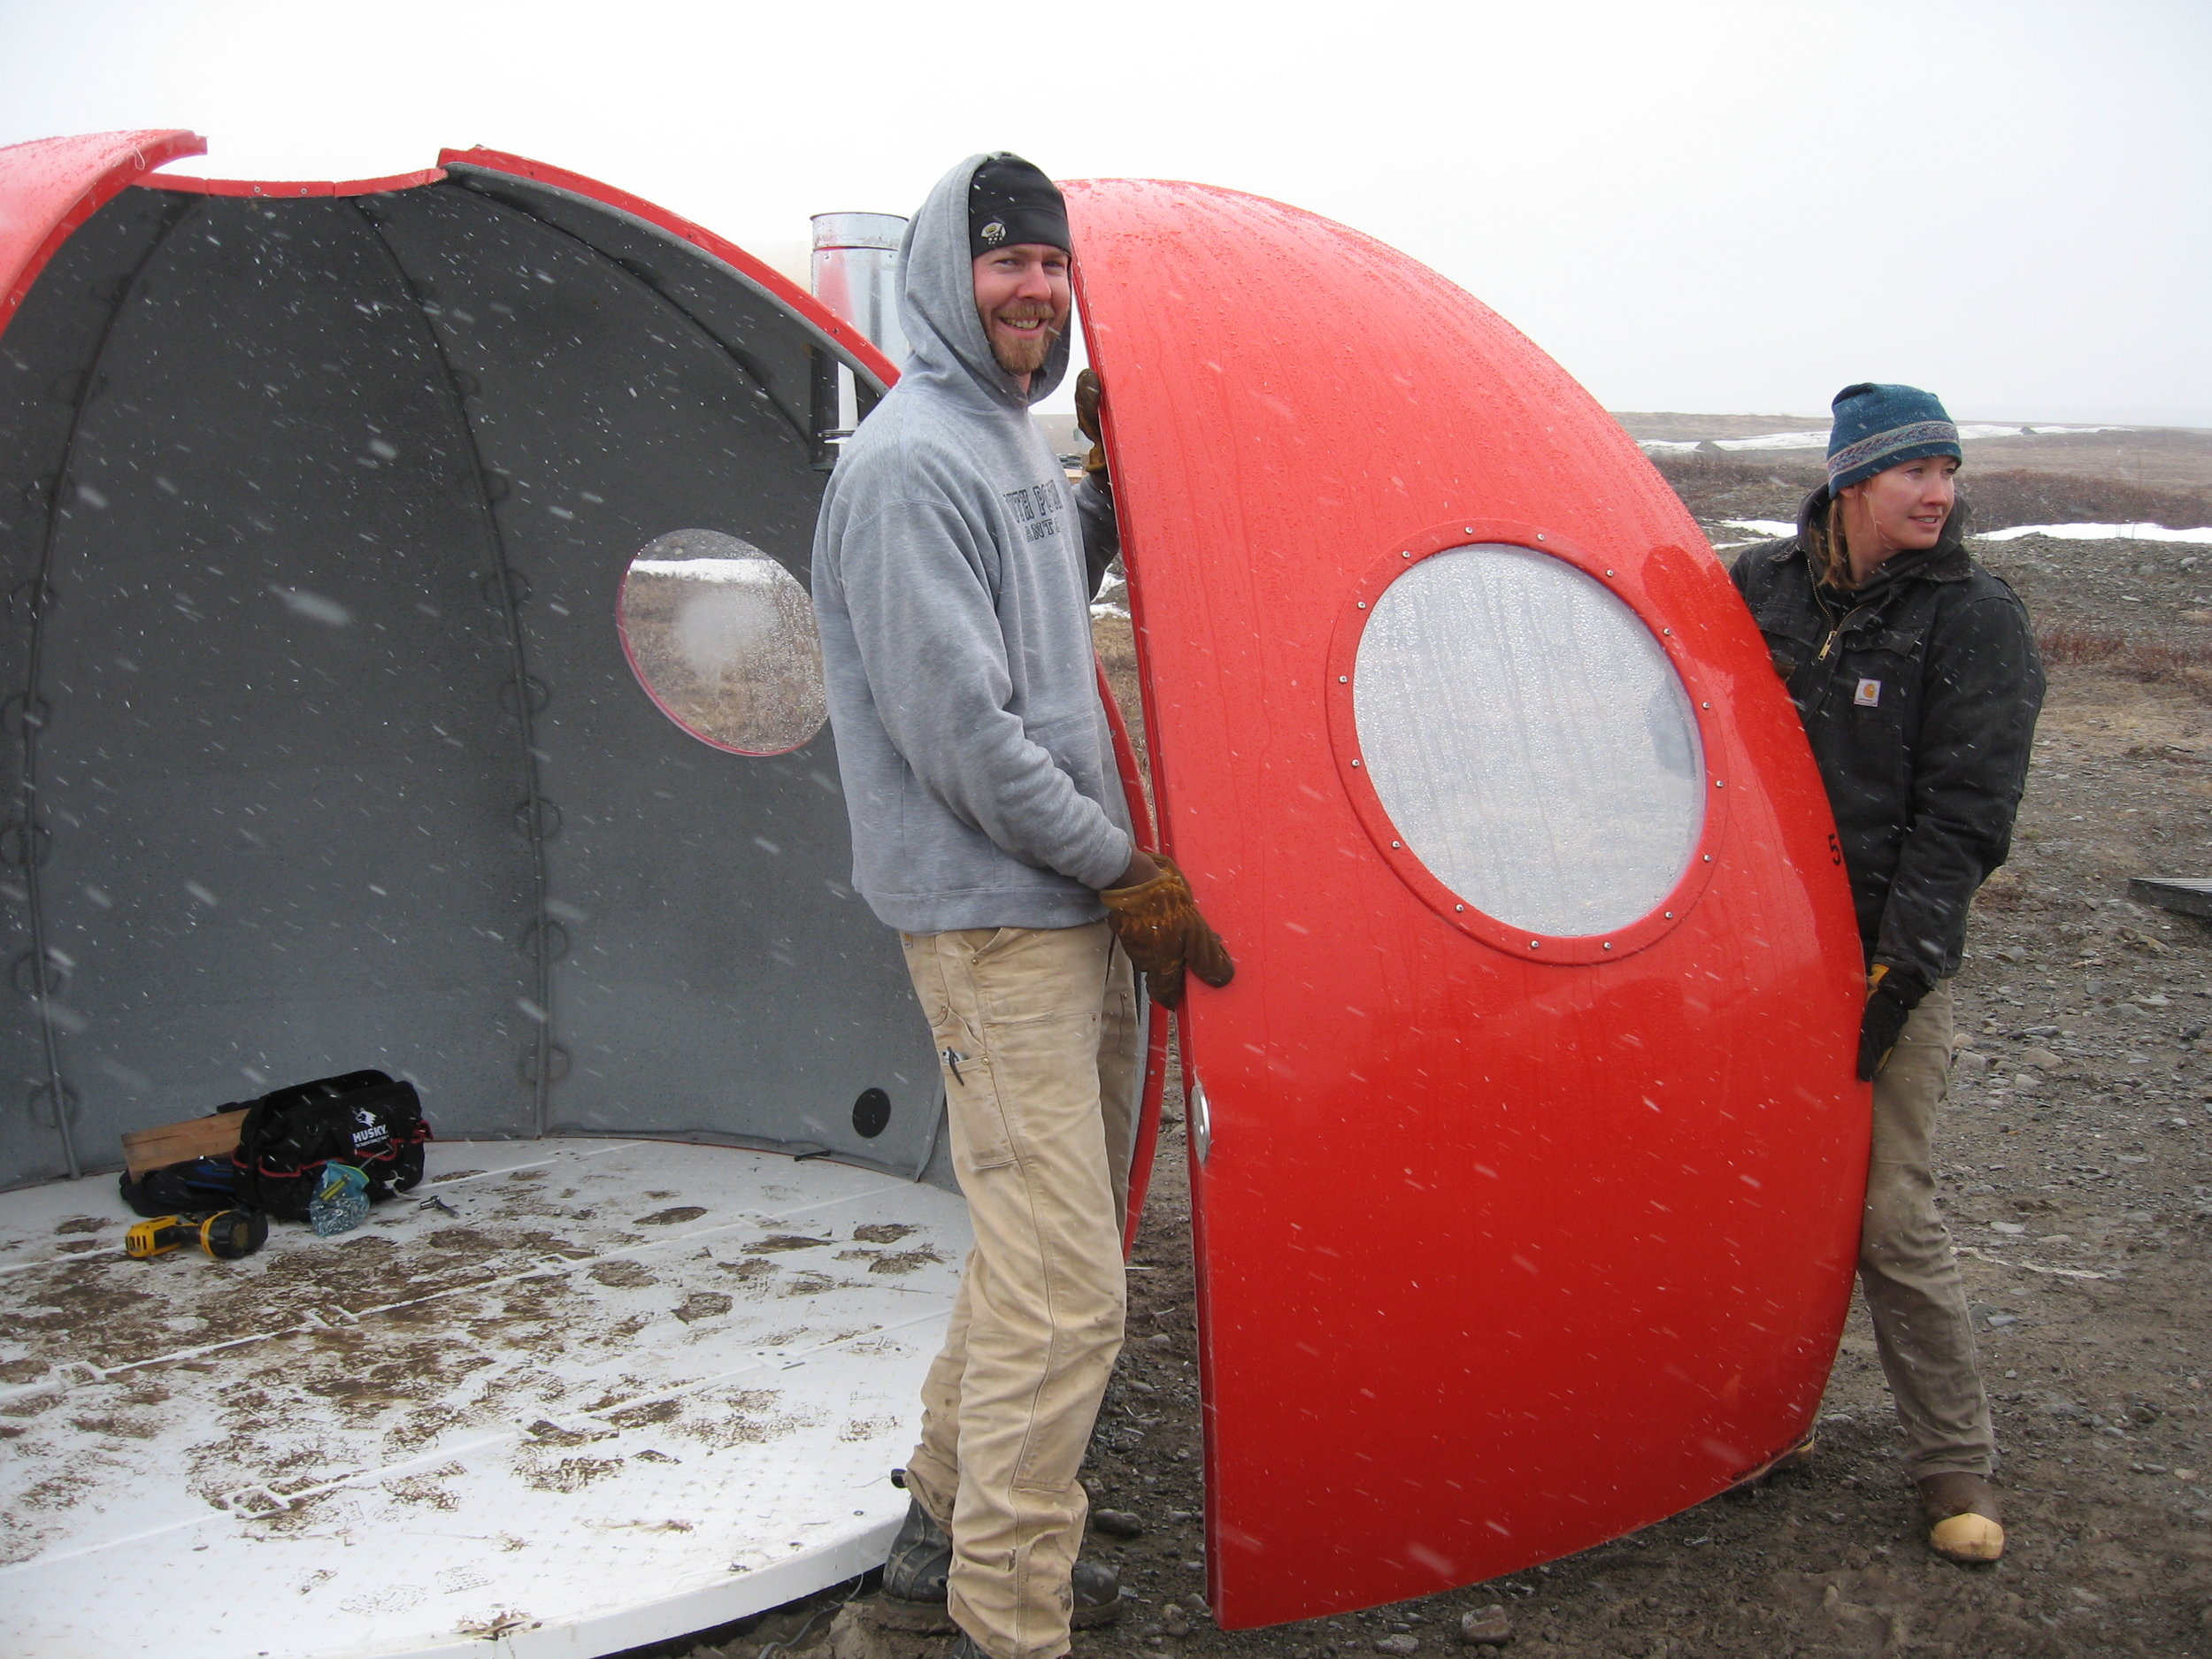 Back at Toolik Field Station, Erik Lund and Annalisa Neely take the Igloo apart.